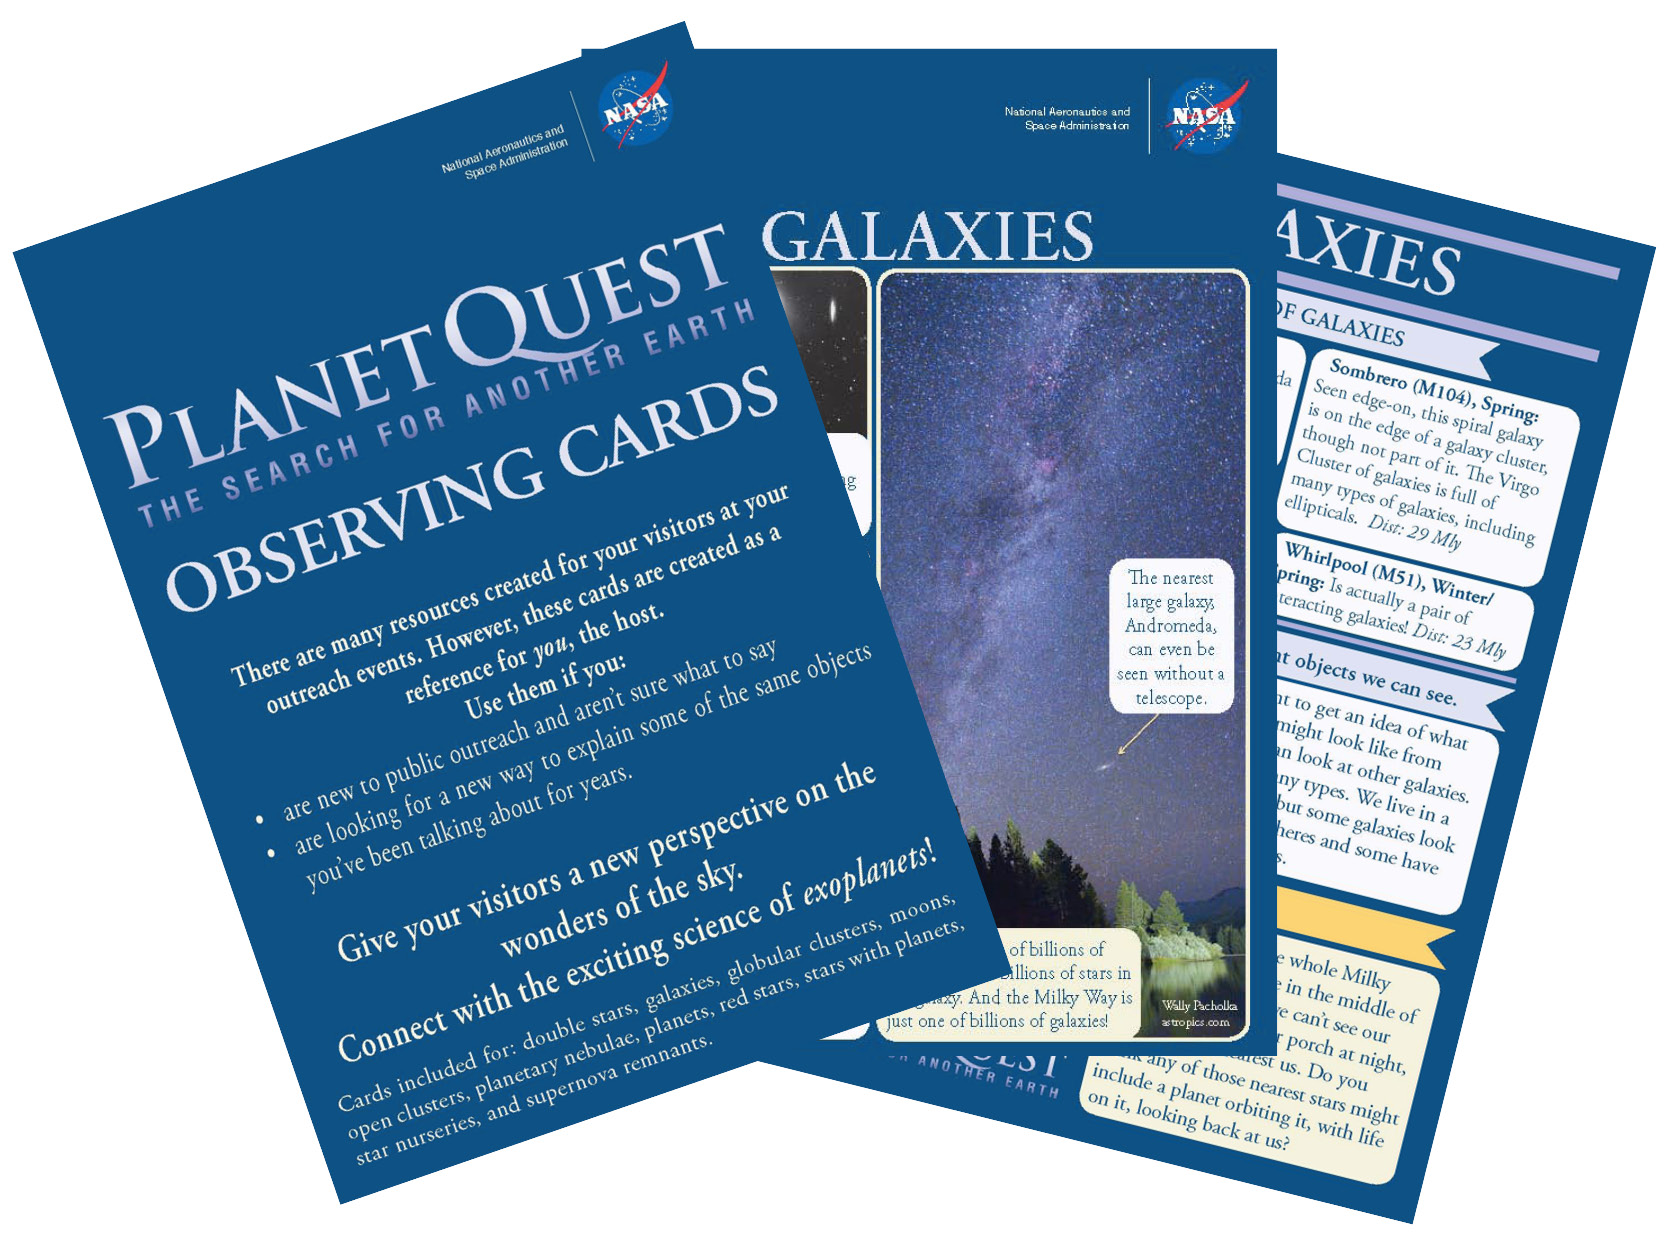 Observing Cards for star parties